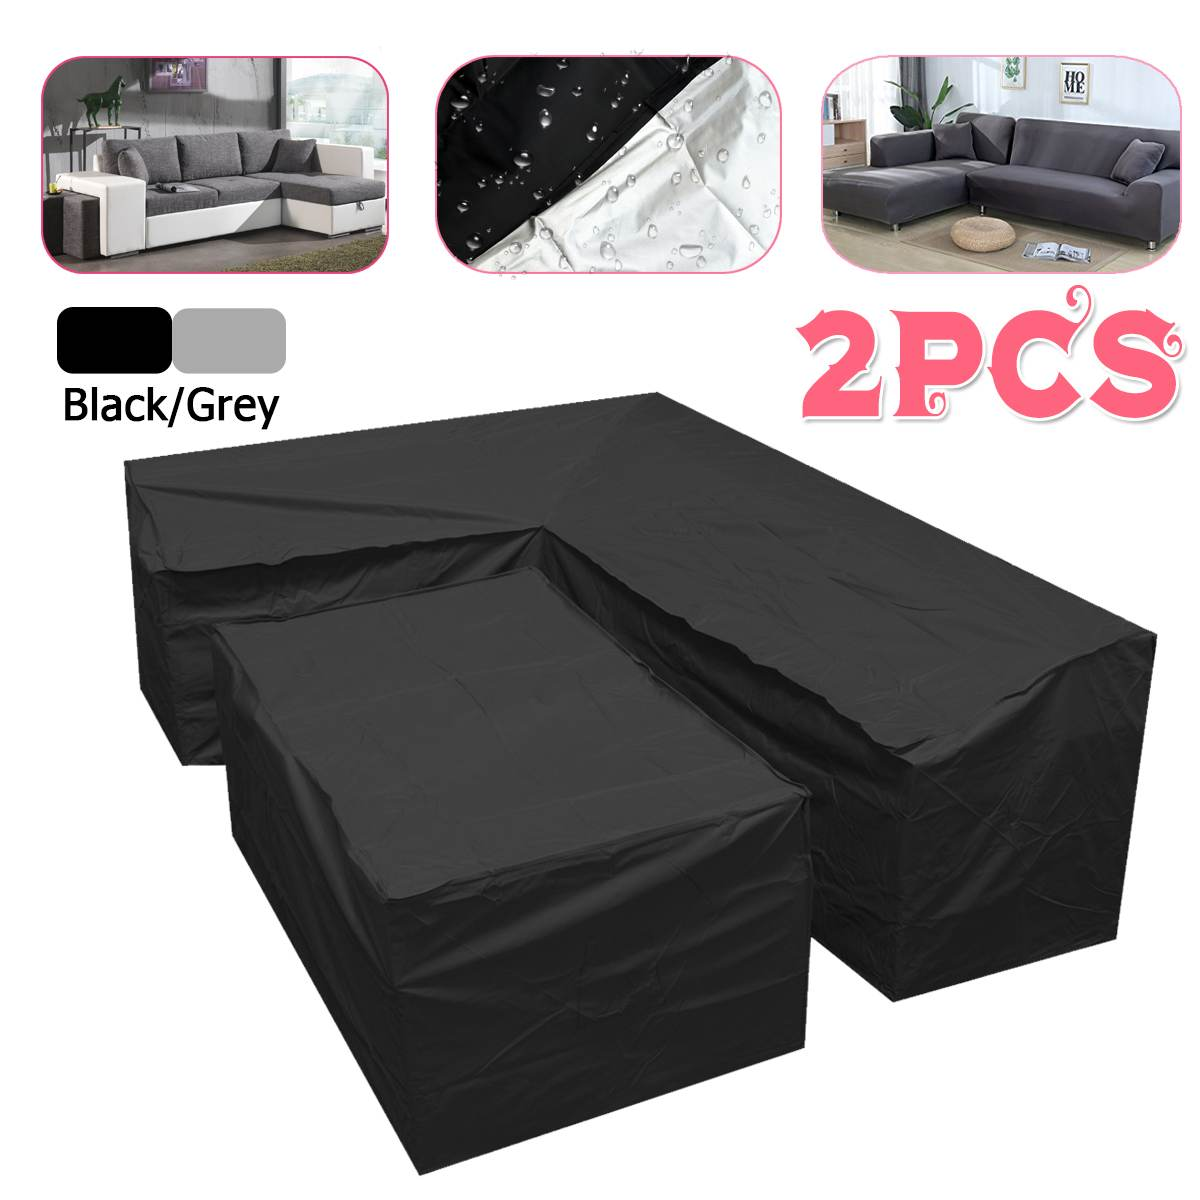 L Shape Dustproof Furniture Cover Waterproof Outdoor Sectional Rain ...